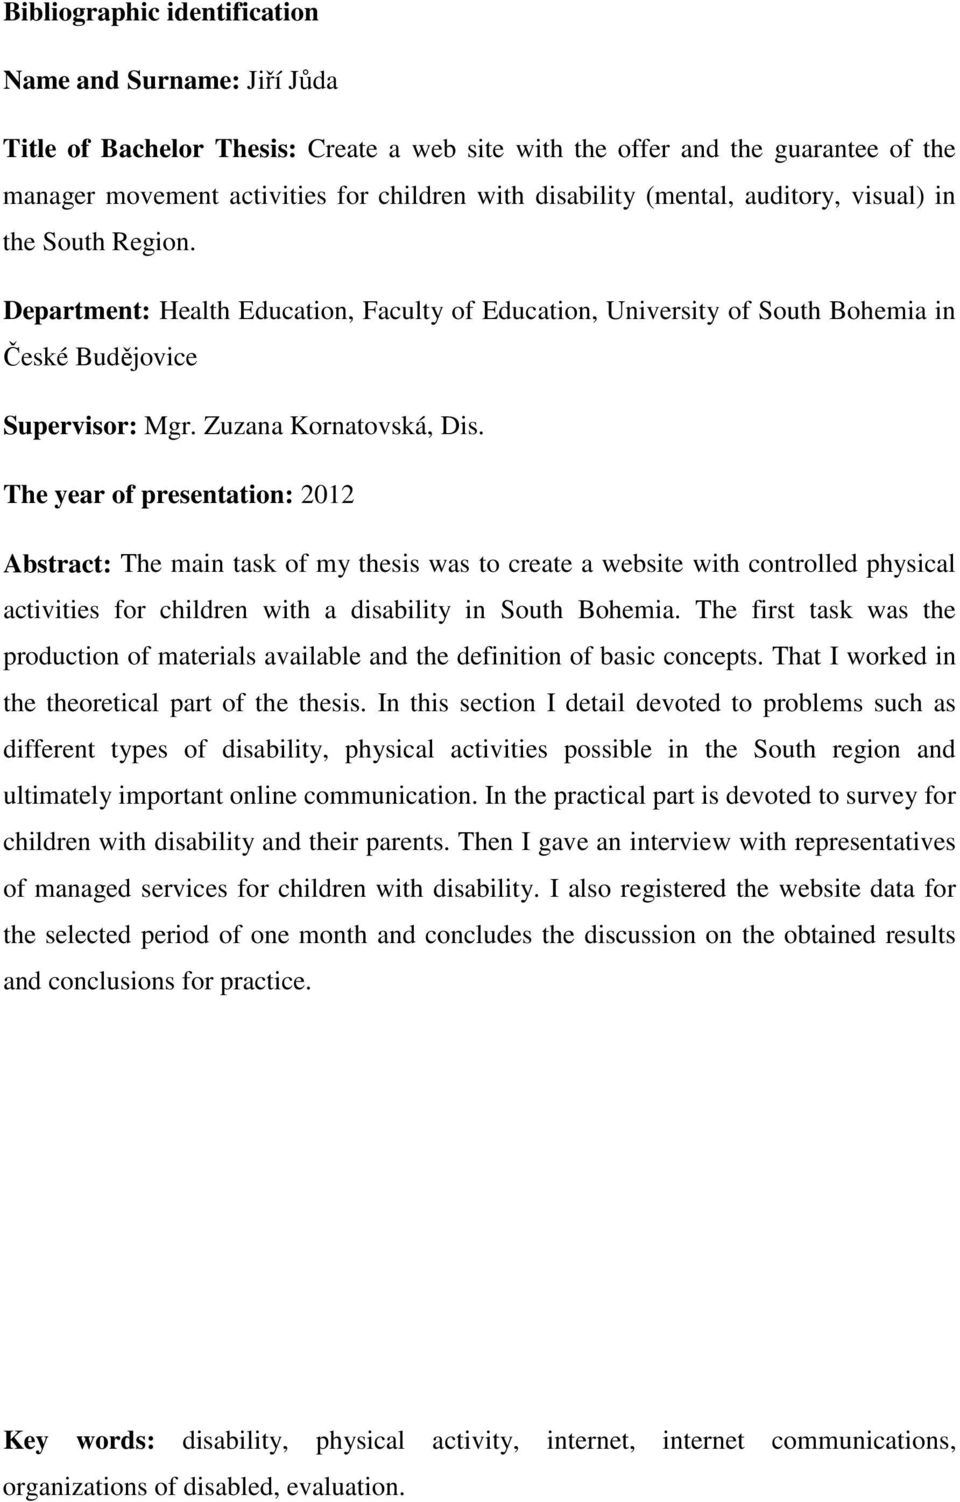 The year of presentation: 2012 Abstract: The main task of my thesis was to create a website with controlled physical activities for children with a disability in South Bohemia.